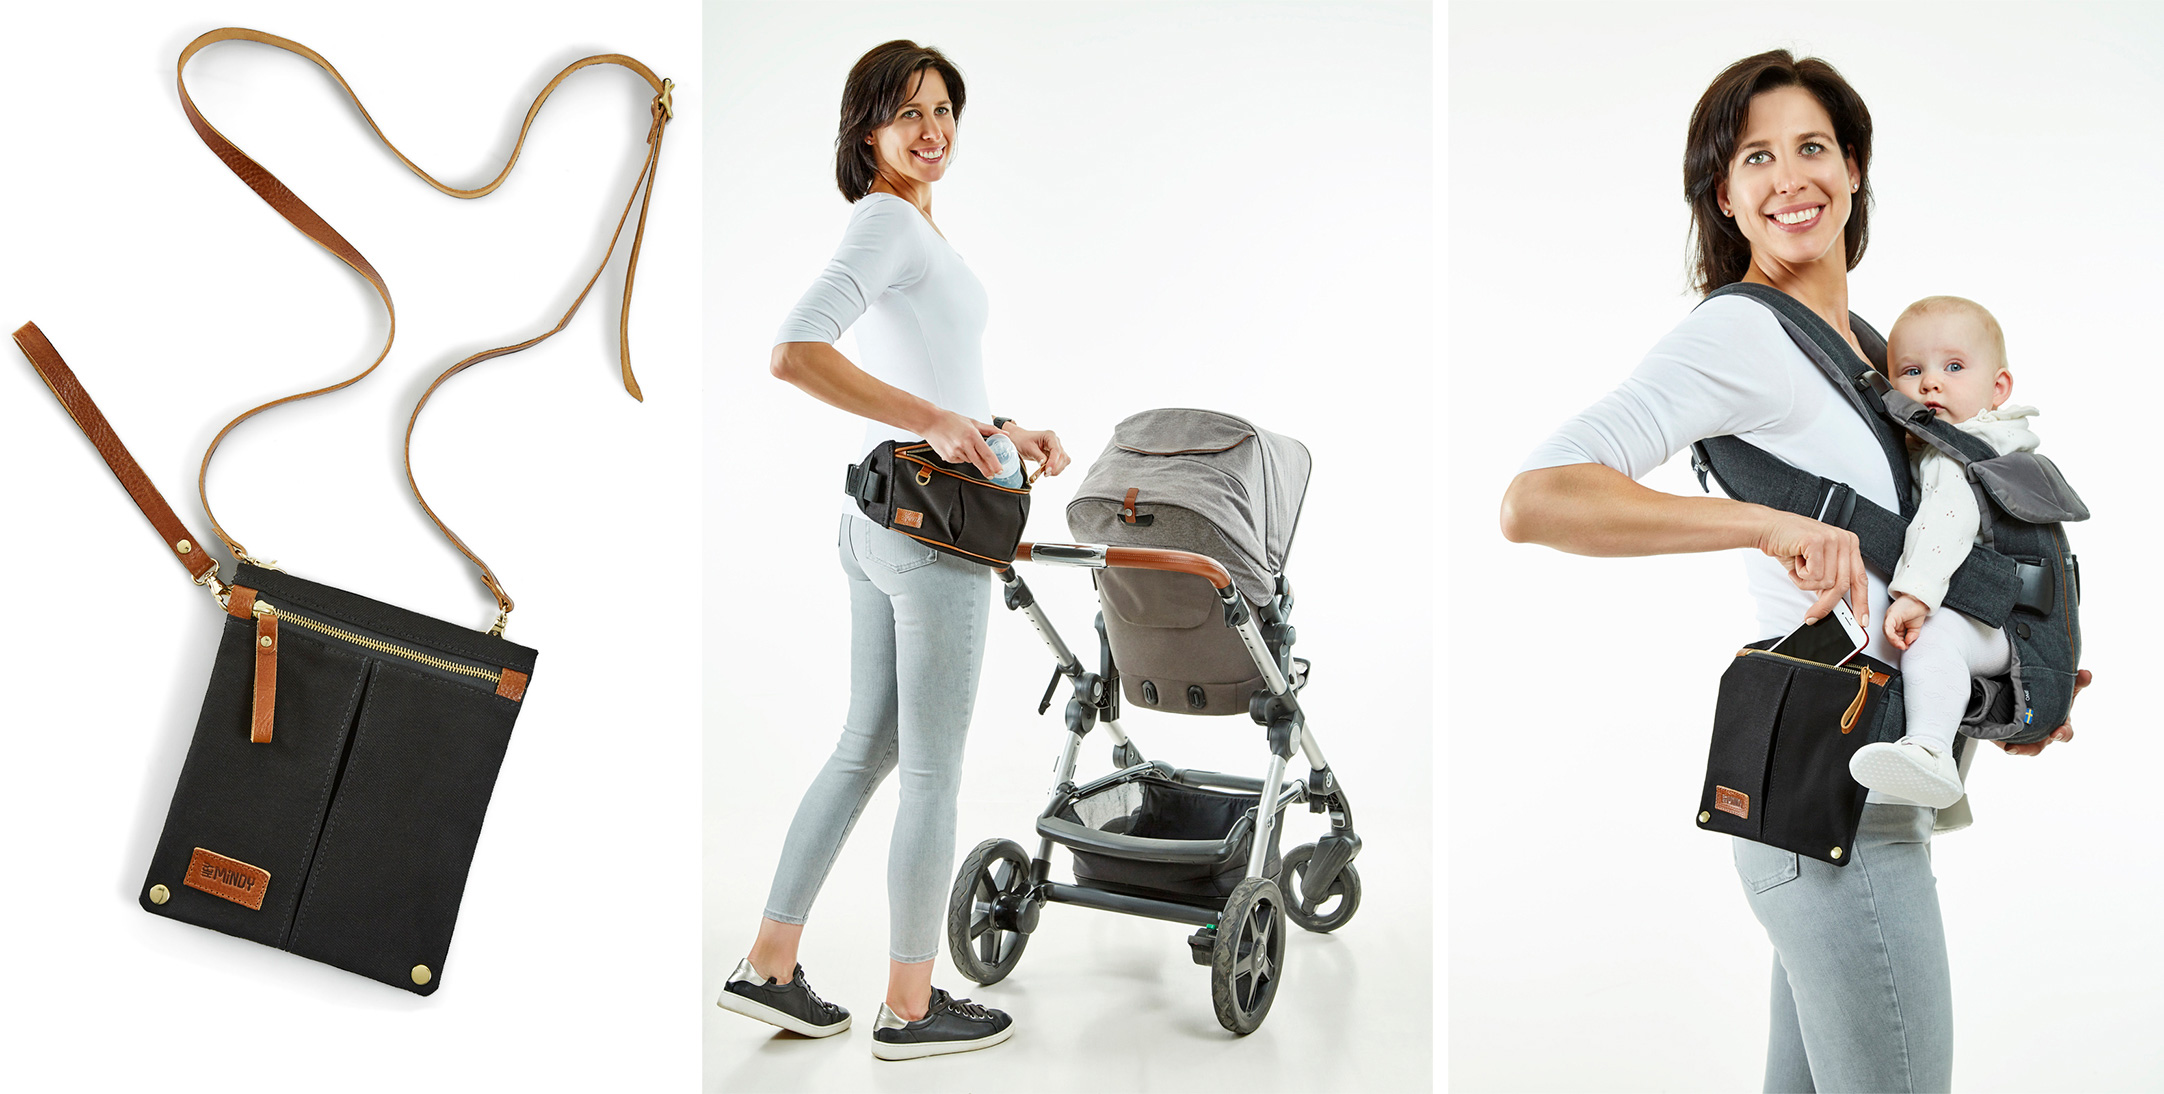 Lifestyle photography in the studio - woman wearing baby products handbag pushing pushchair.  Images used for product Marketing and advertising. Surrey, UK